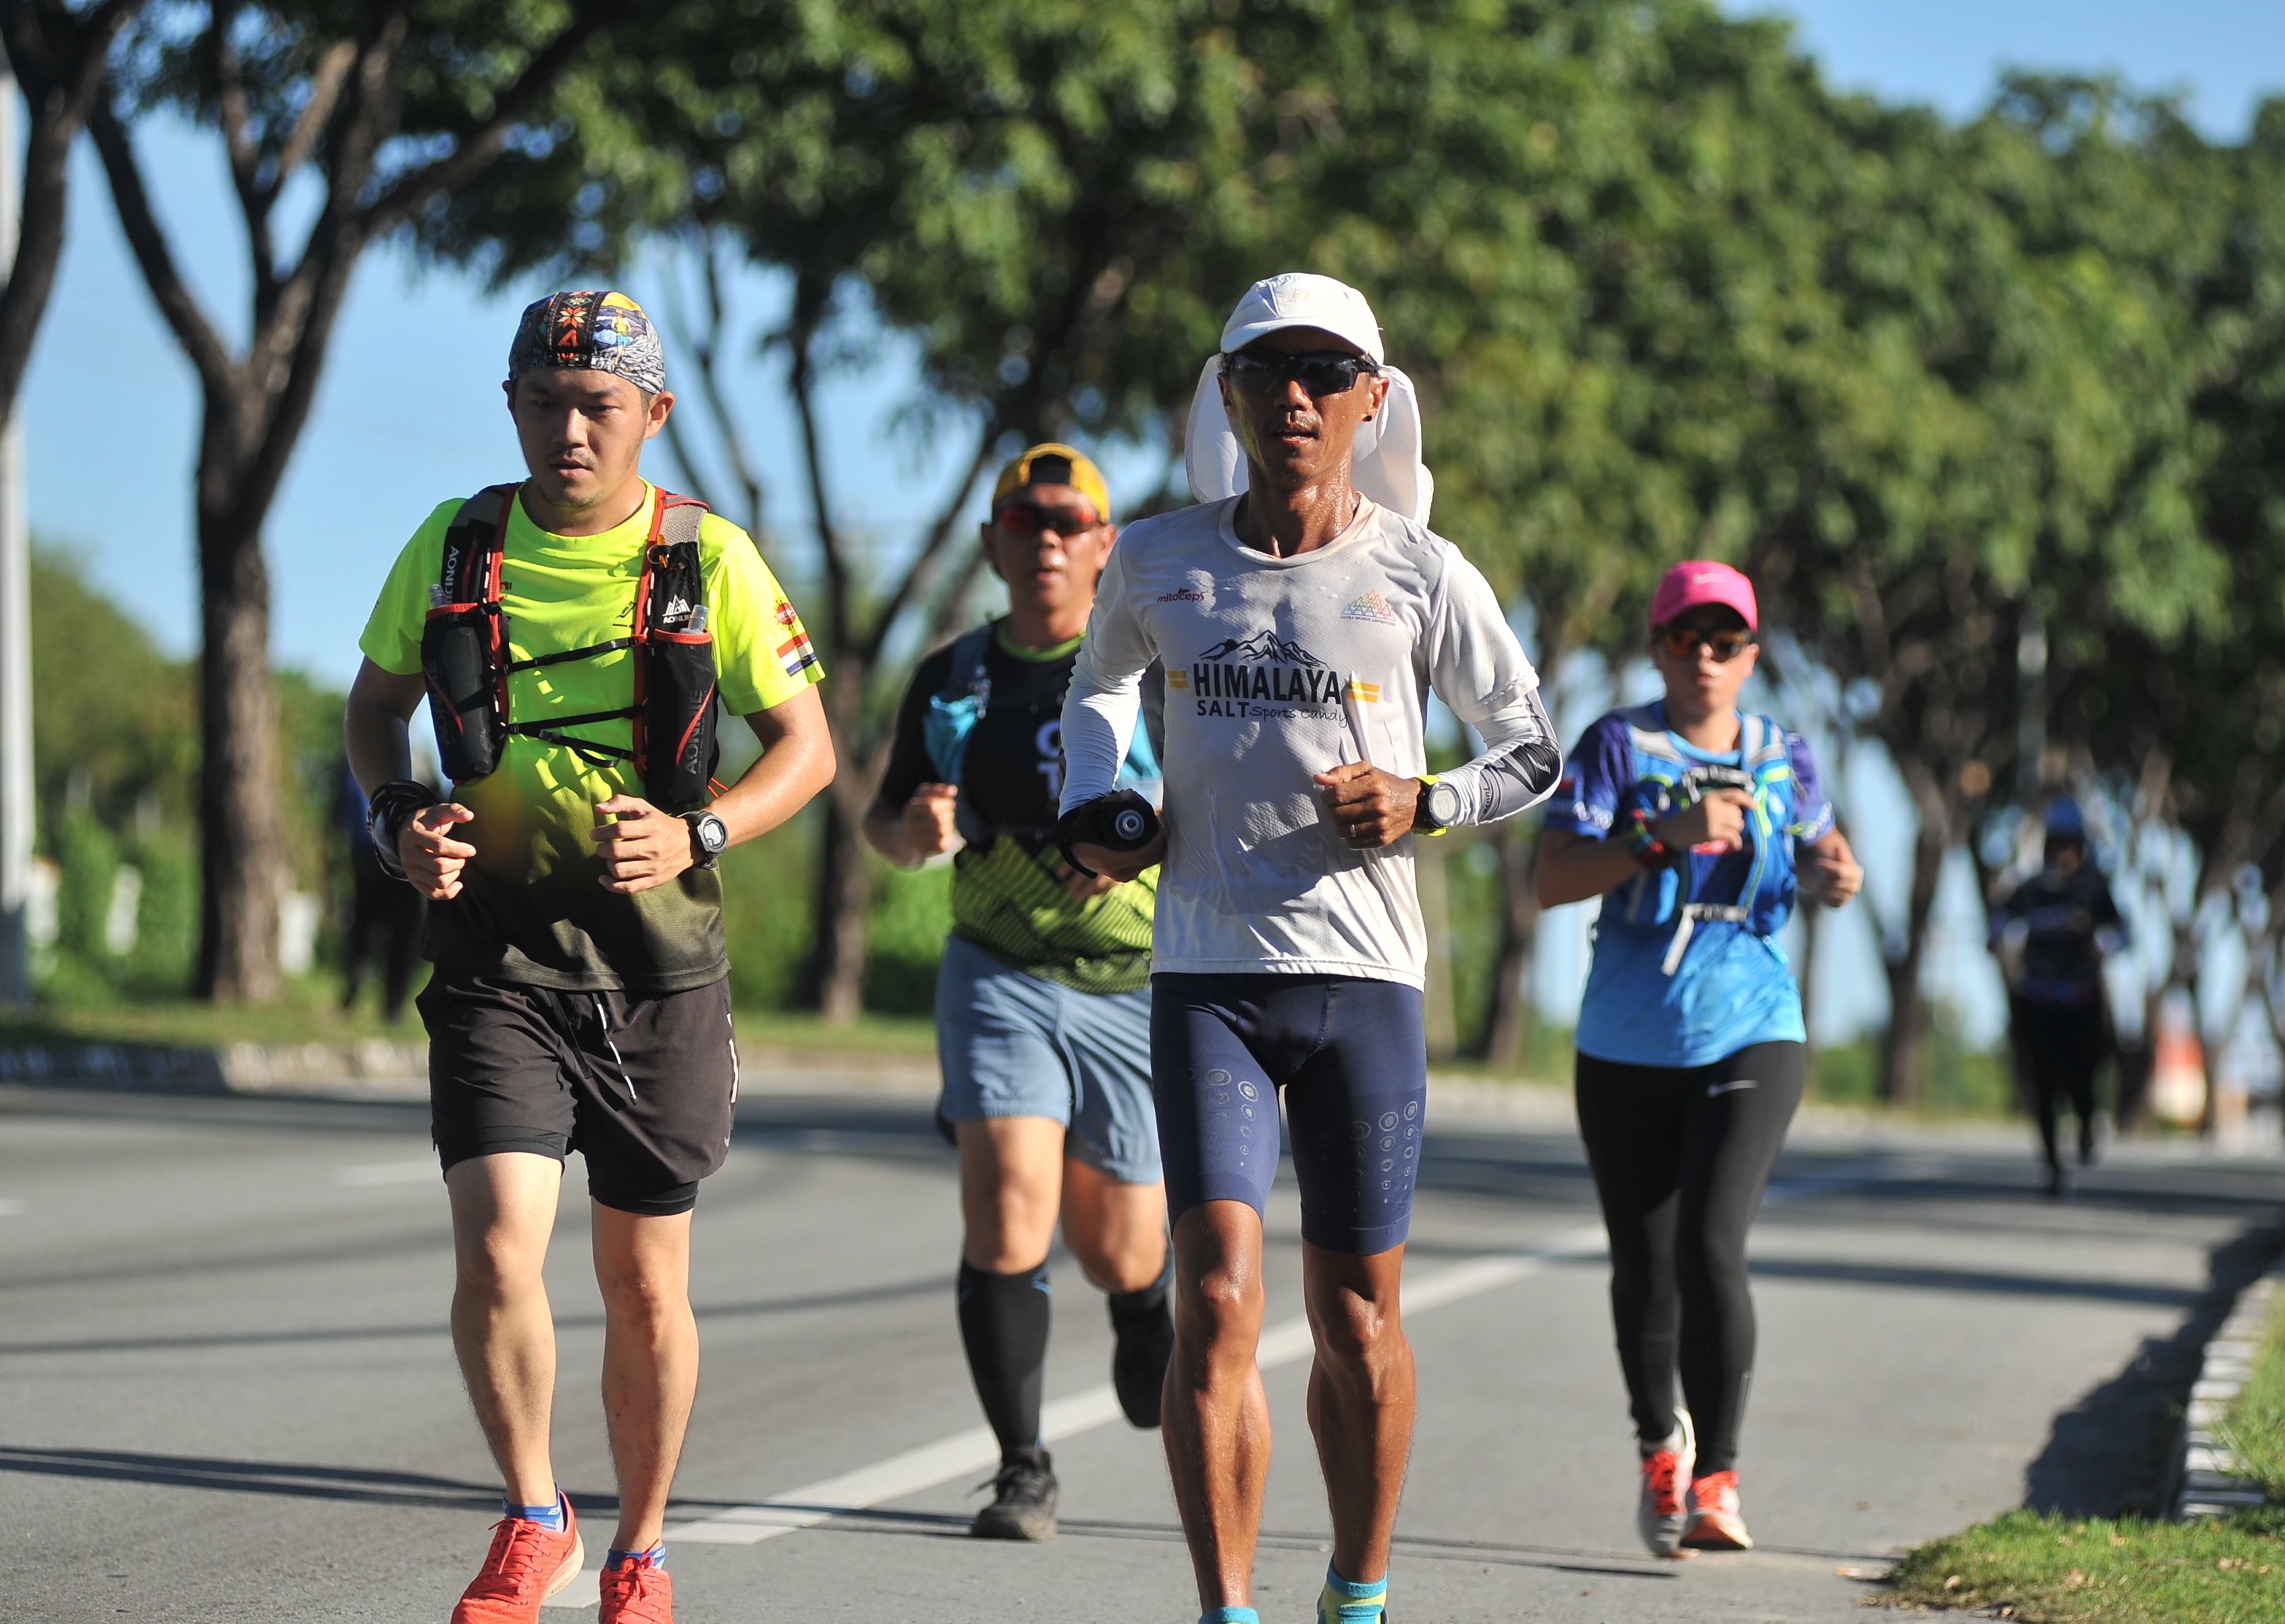 Borneo 1600 Charity Solo Run by Steven Ong